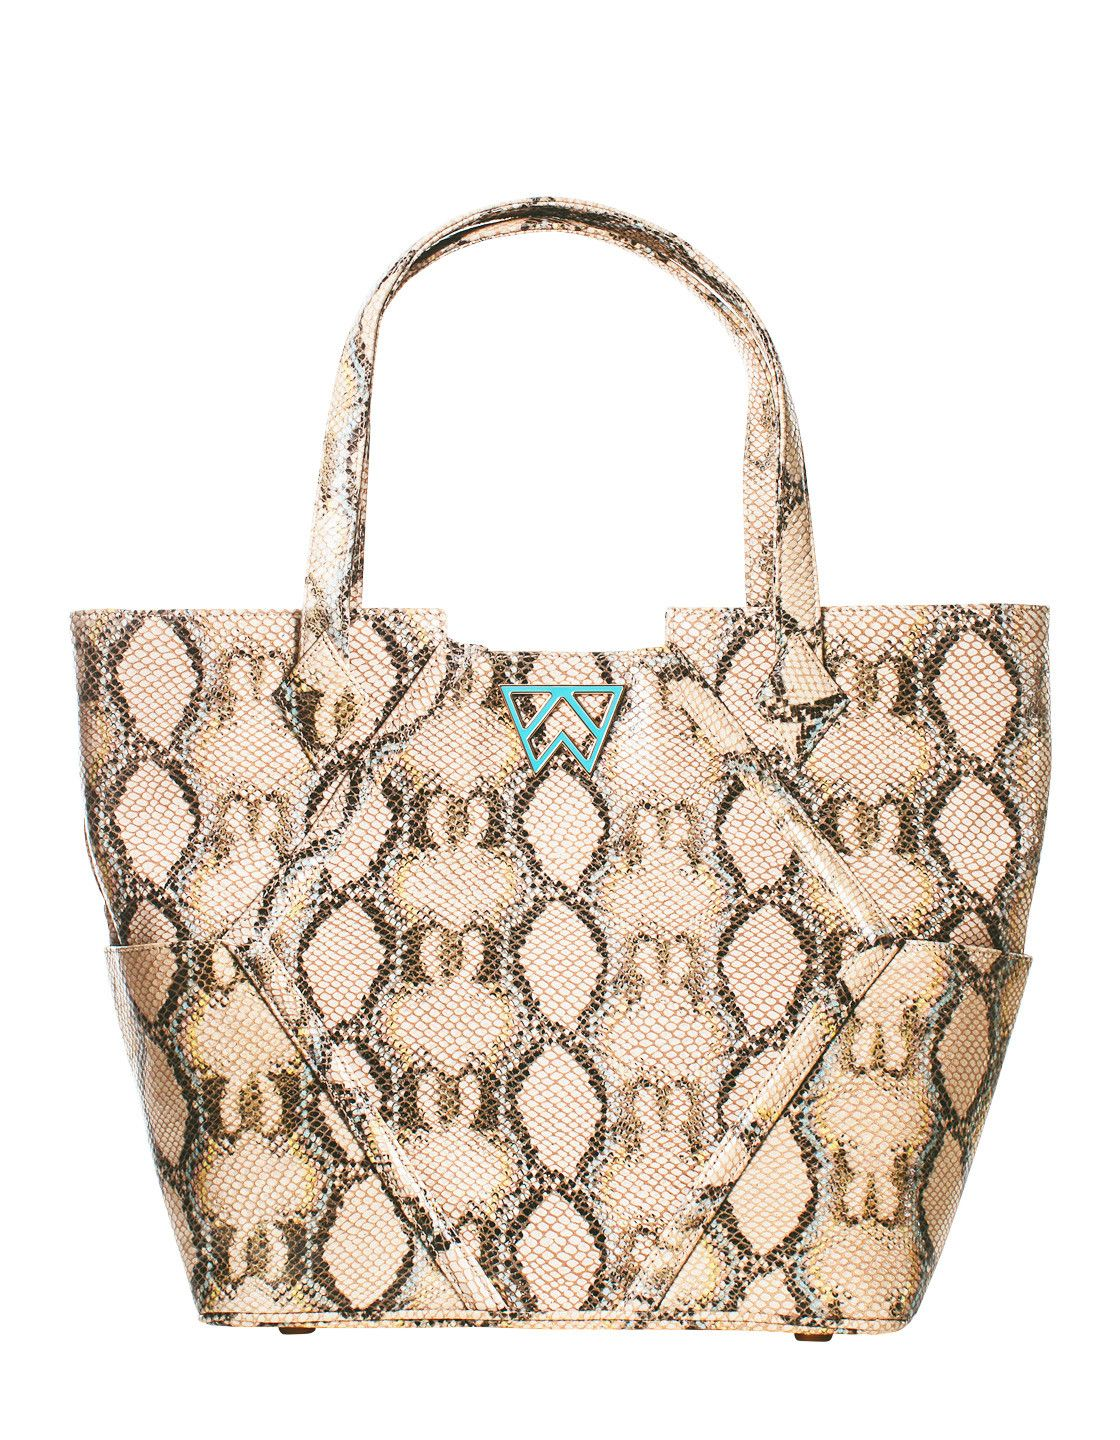 Paint the Town Tote in Turquoise and Caicos